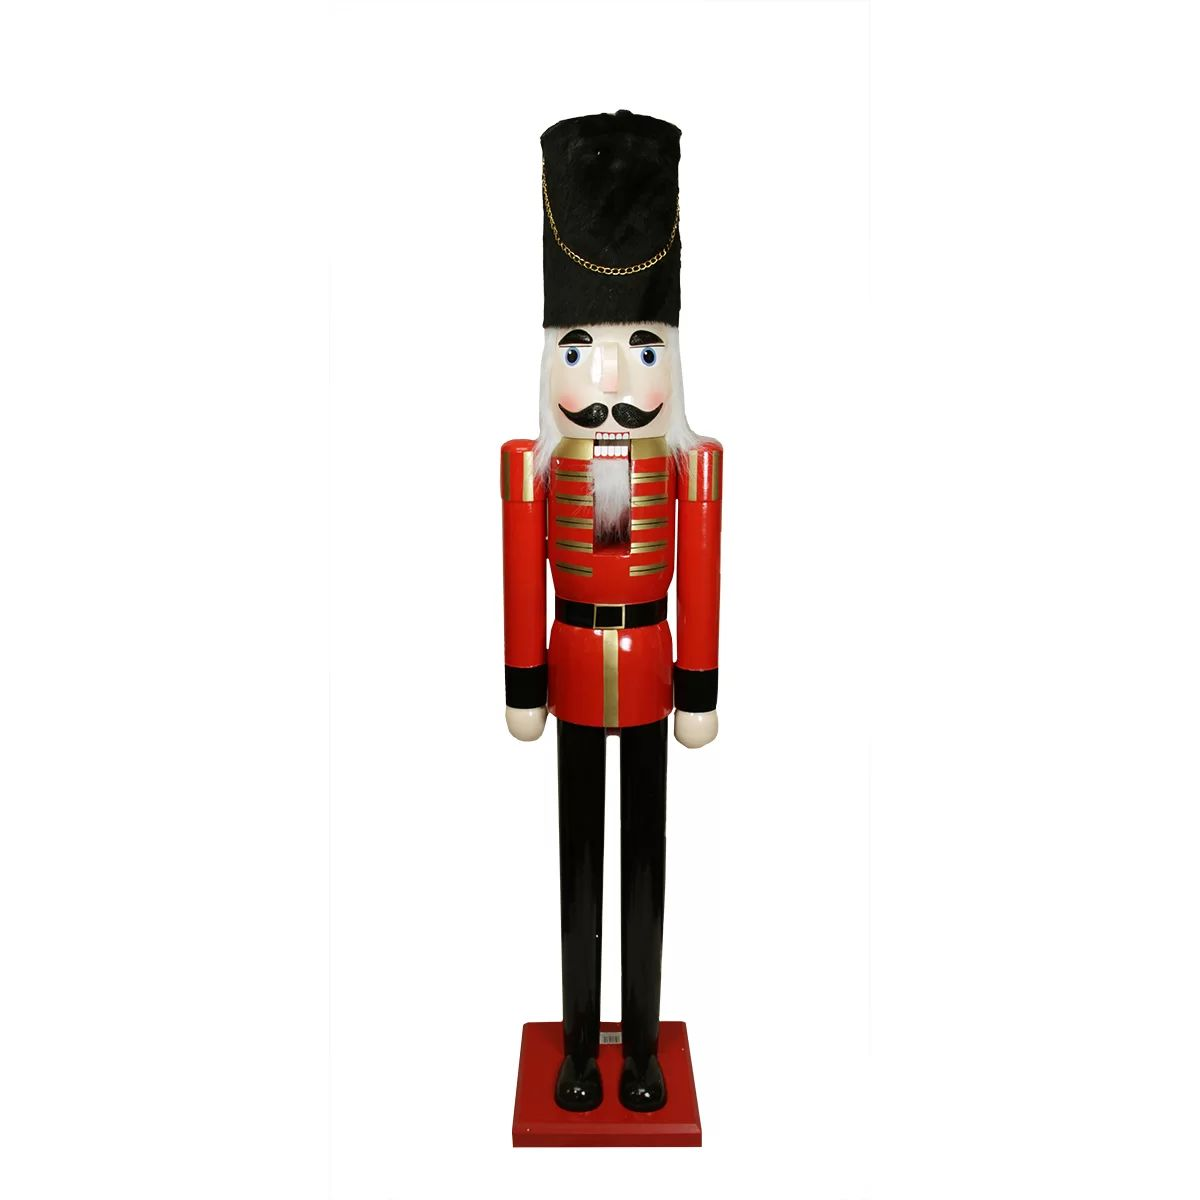 Decorationslifesize toy soldiers and nutcracker christmas decorations - Decorationslifesize Toy Soldiers And Nutcracker Christmas Decorations Christmas Decor Large Metal Nutcracker Soldiers Size Download